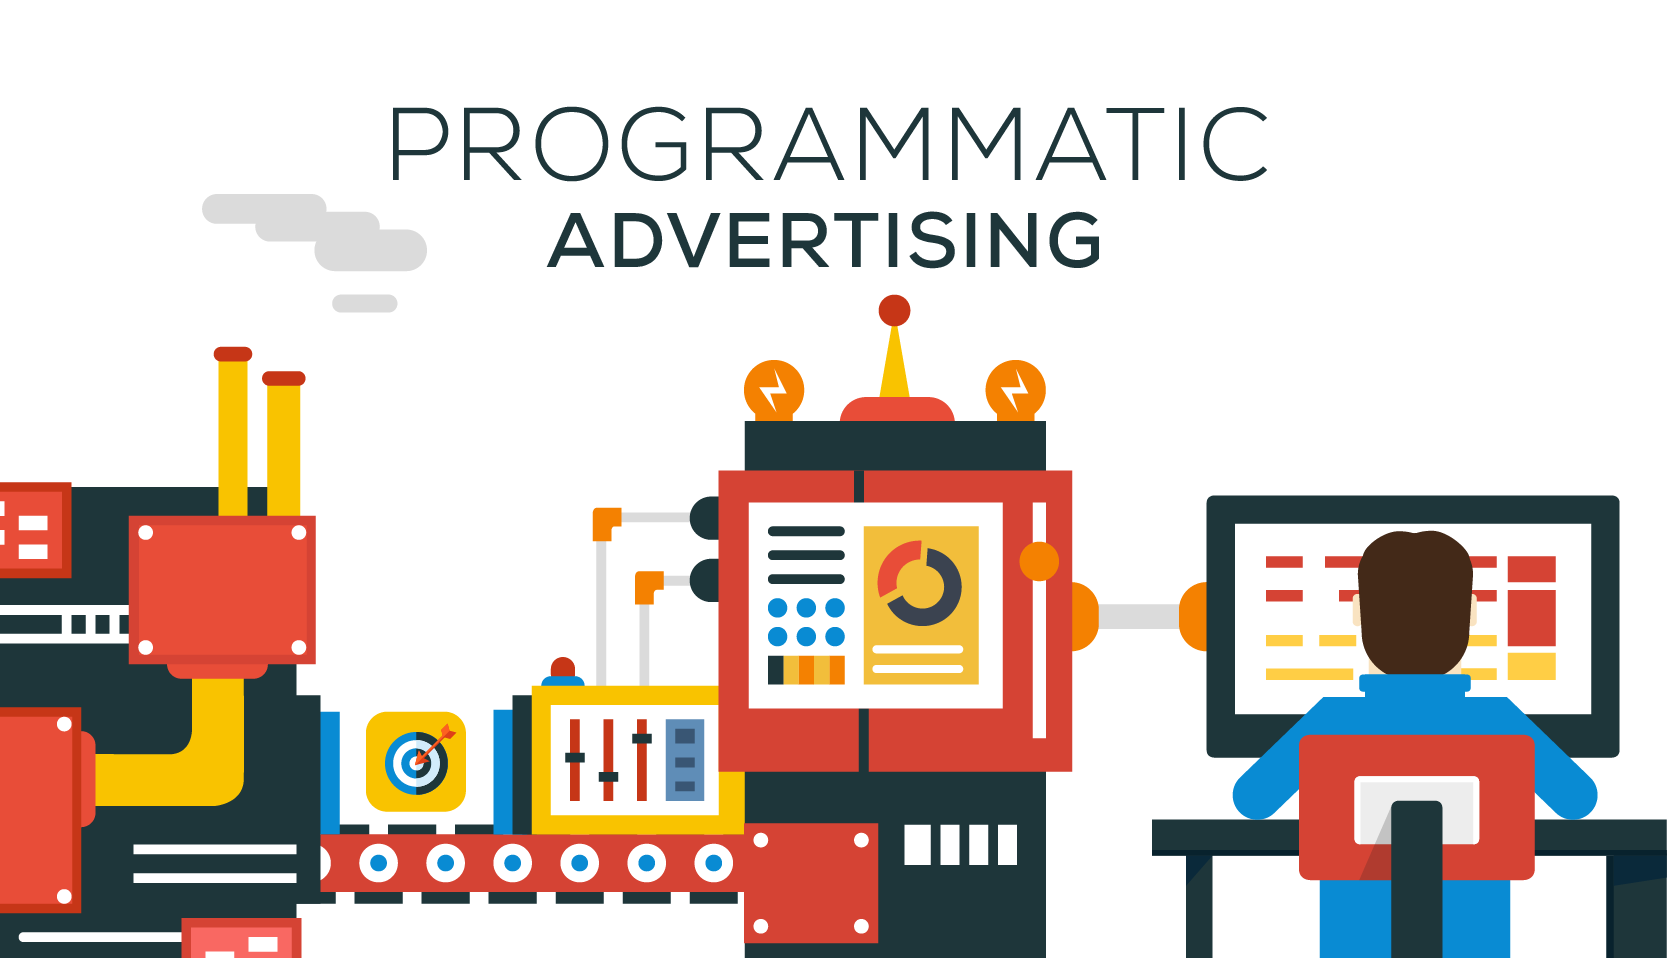 A Beginner-friendly guide to Programmatic Advertising